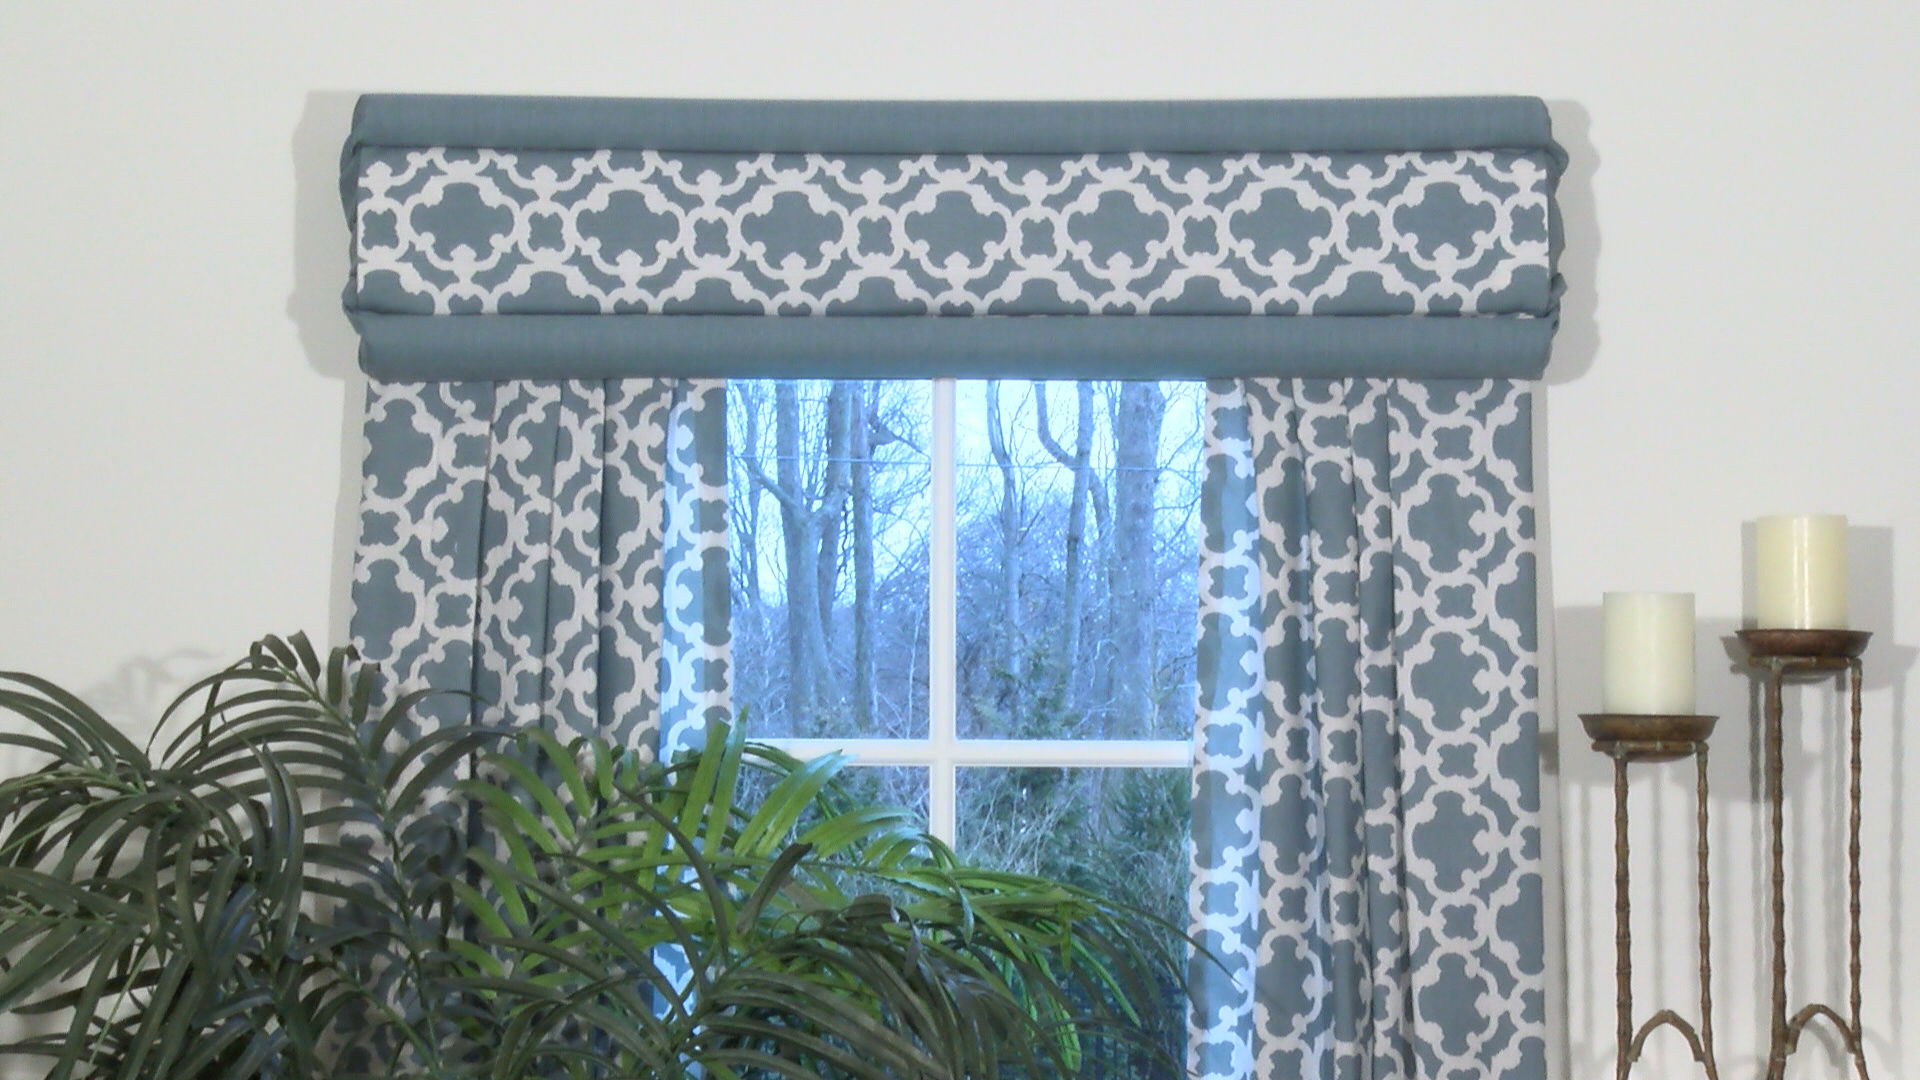 shades and sewing cornice window drapes valances treatment photo wood large roman of made panel masterpiece kinds jabots custom draperies valance swag gallery tailoring all